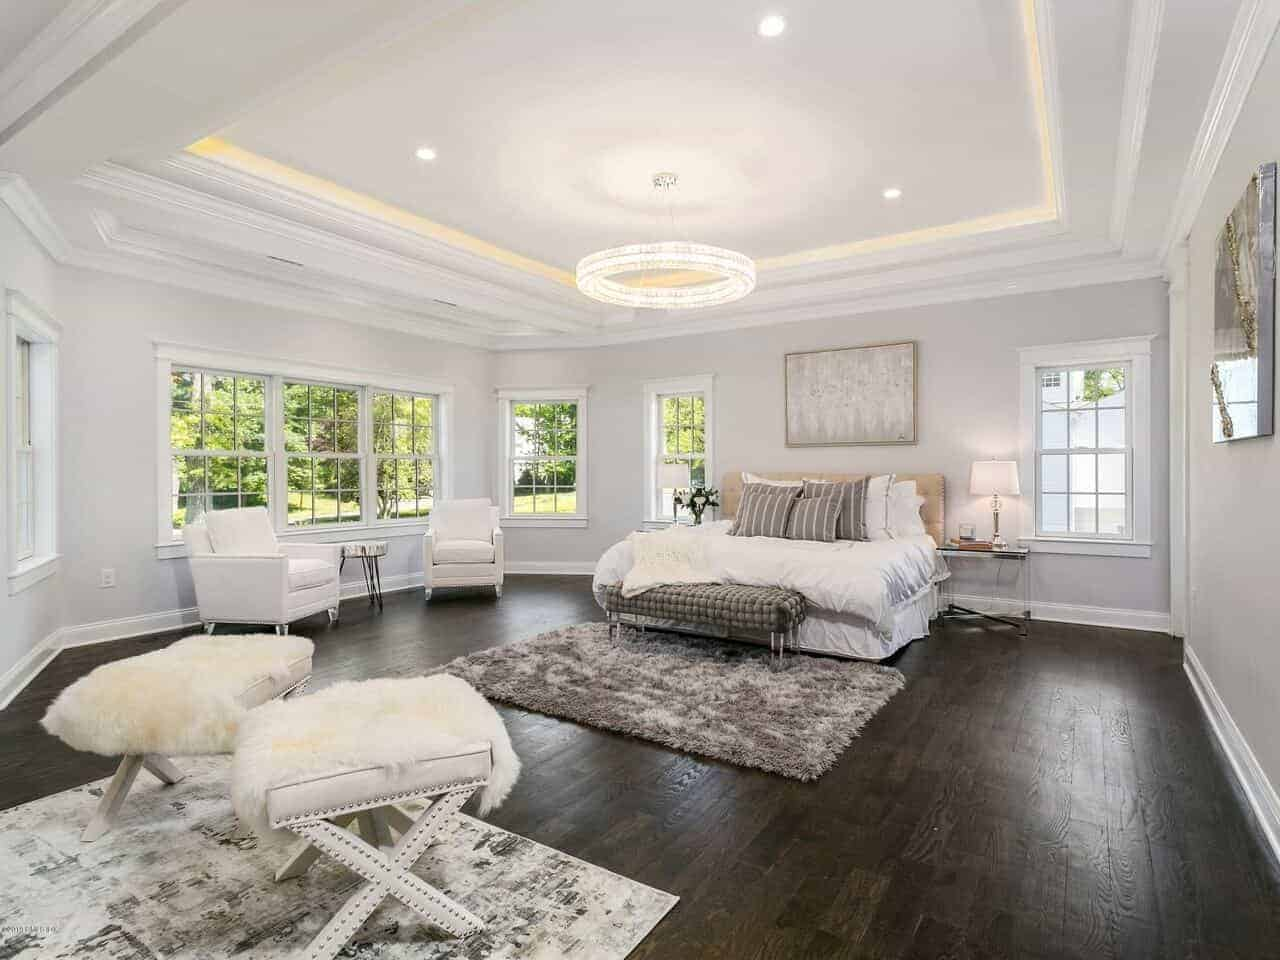 This master bedroom has a brilliant modern circular light hanging from the white tray ceiling that contrasts the dark hardwood flooring that makes the white bed stand out with its beige cushioned headboard.